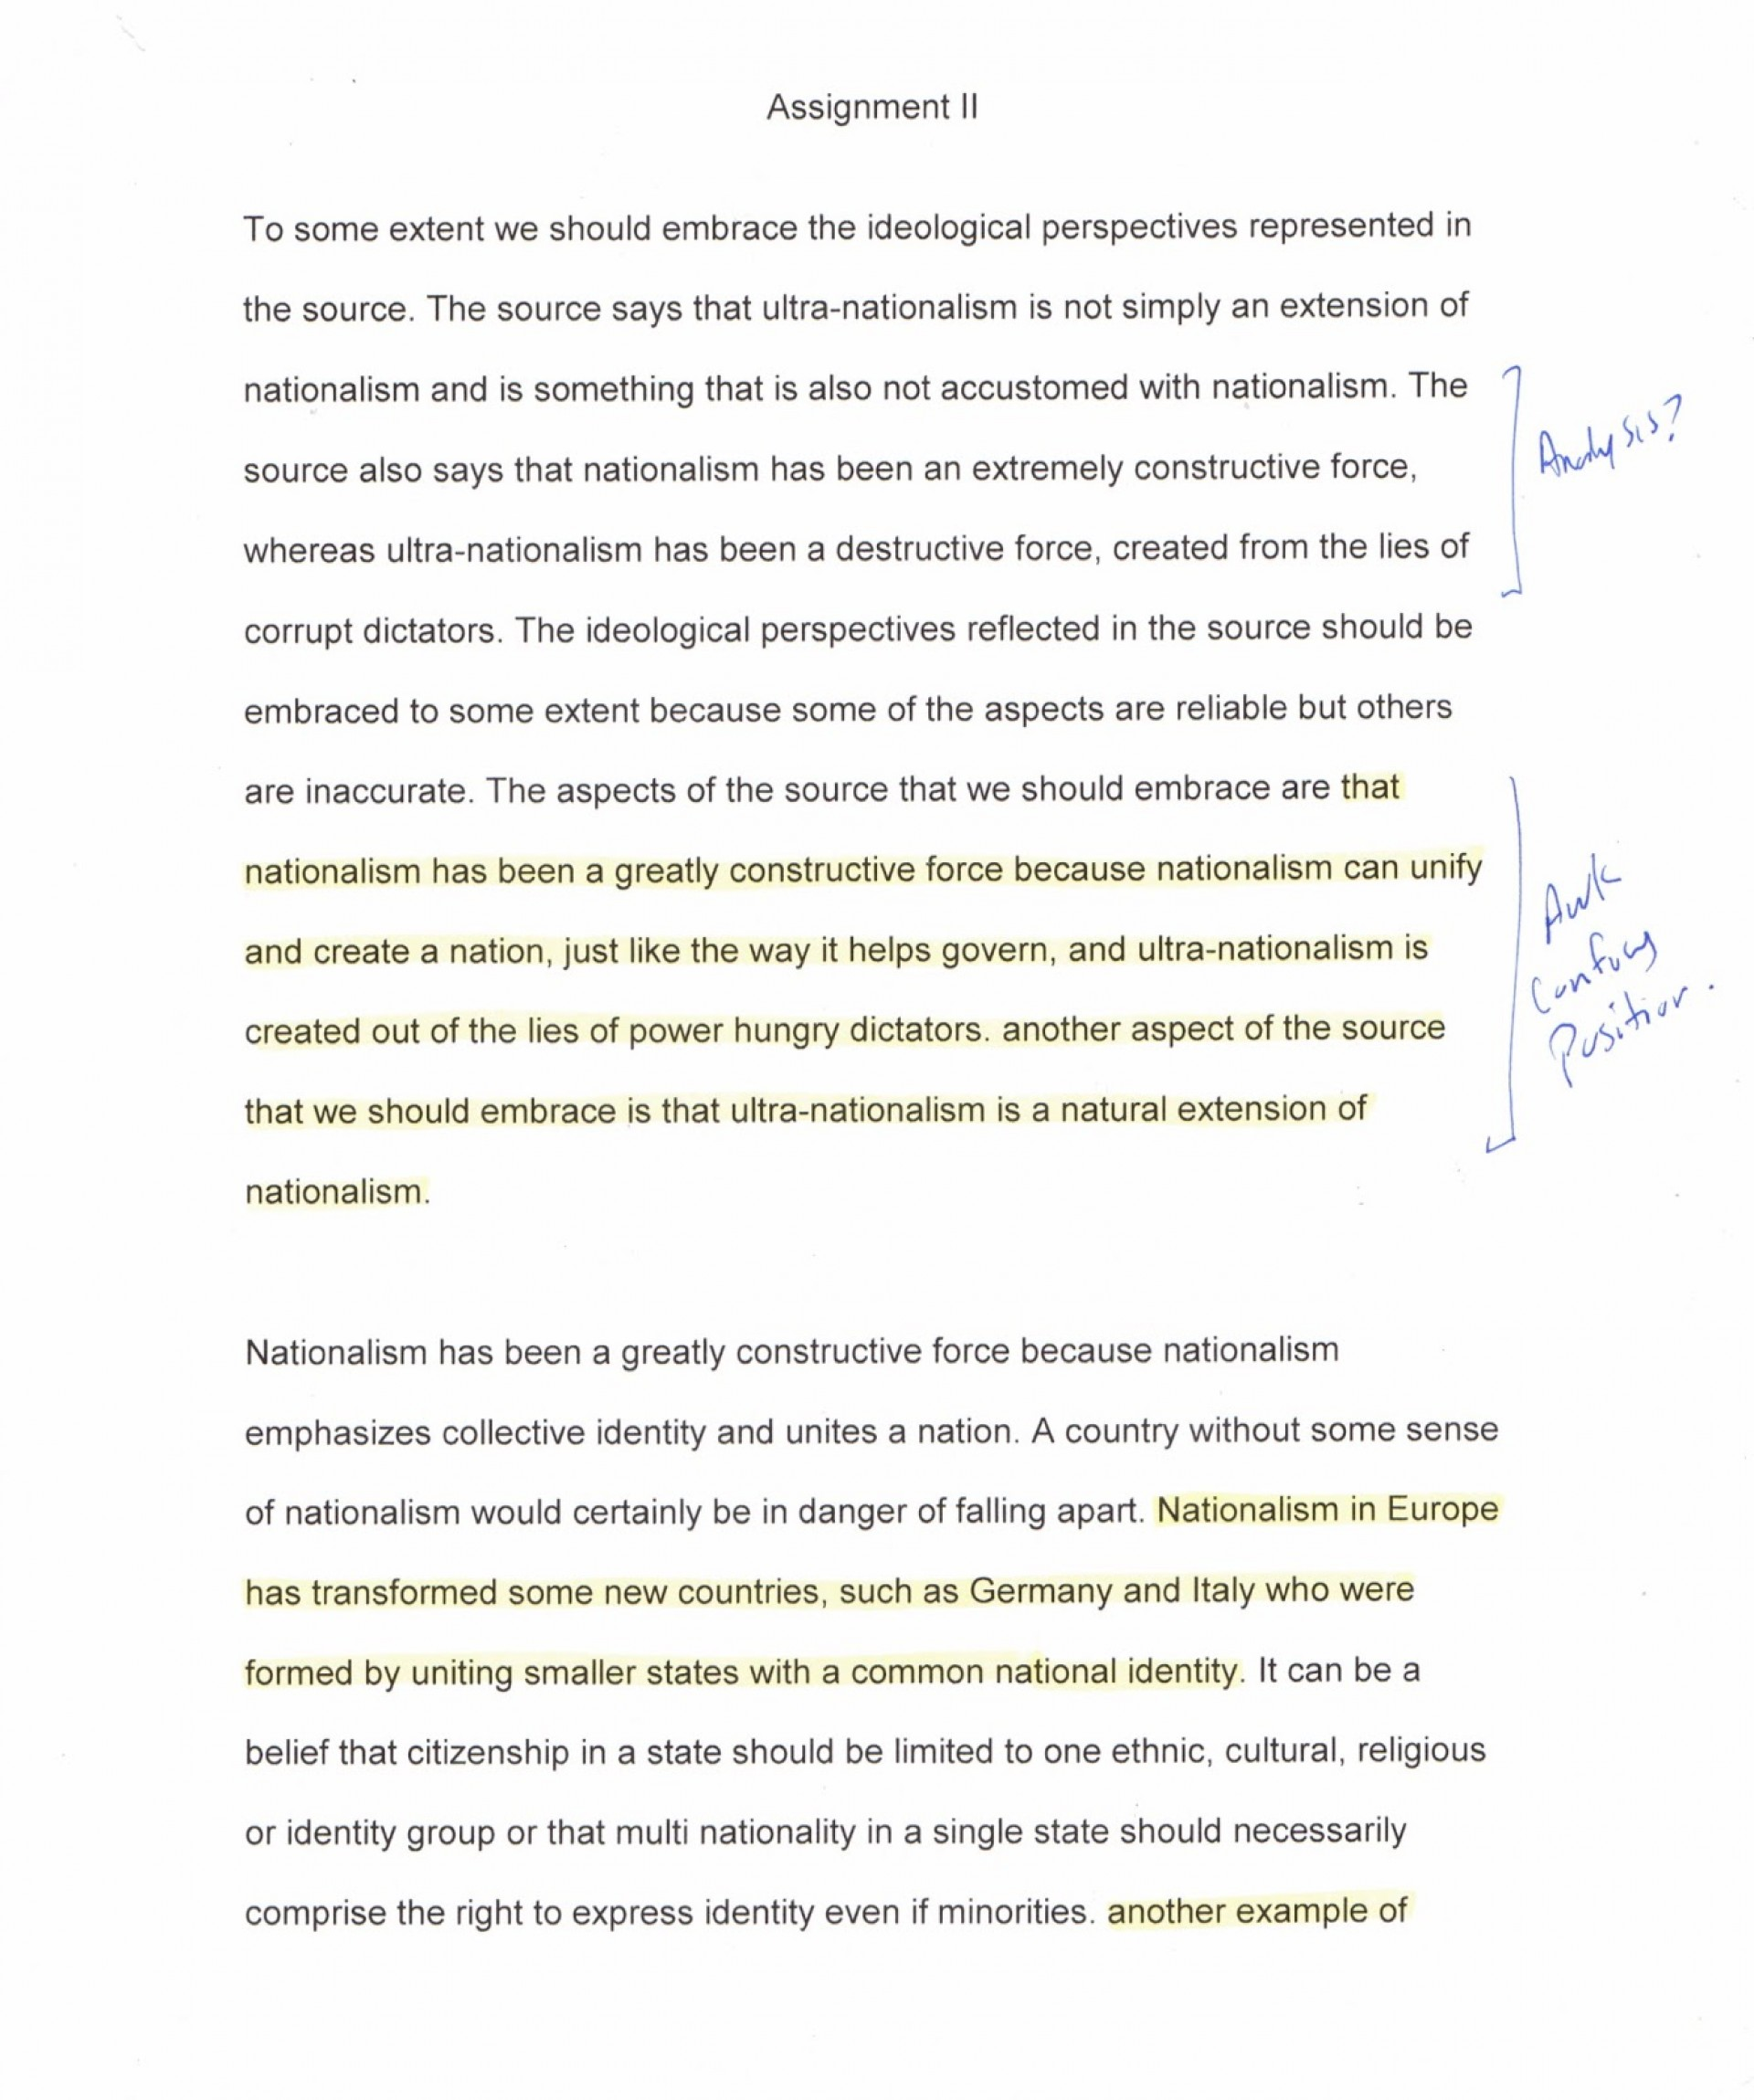 002 Assignment20ii20page201 Nationalism Essay Impressive Topics African Pdf 1920